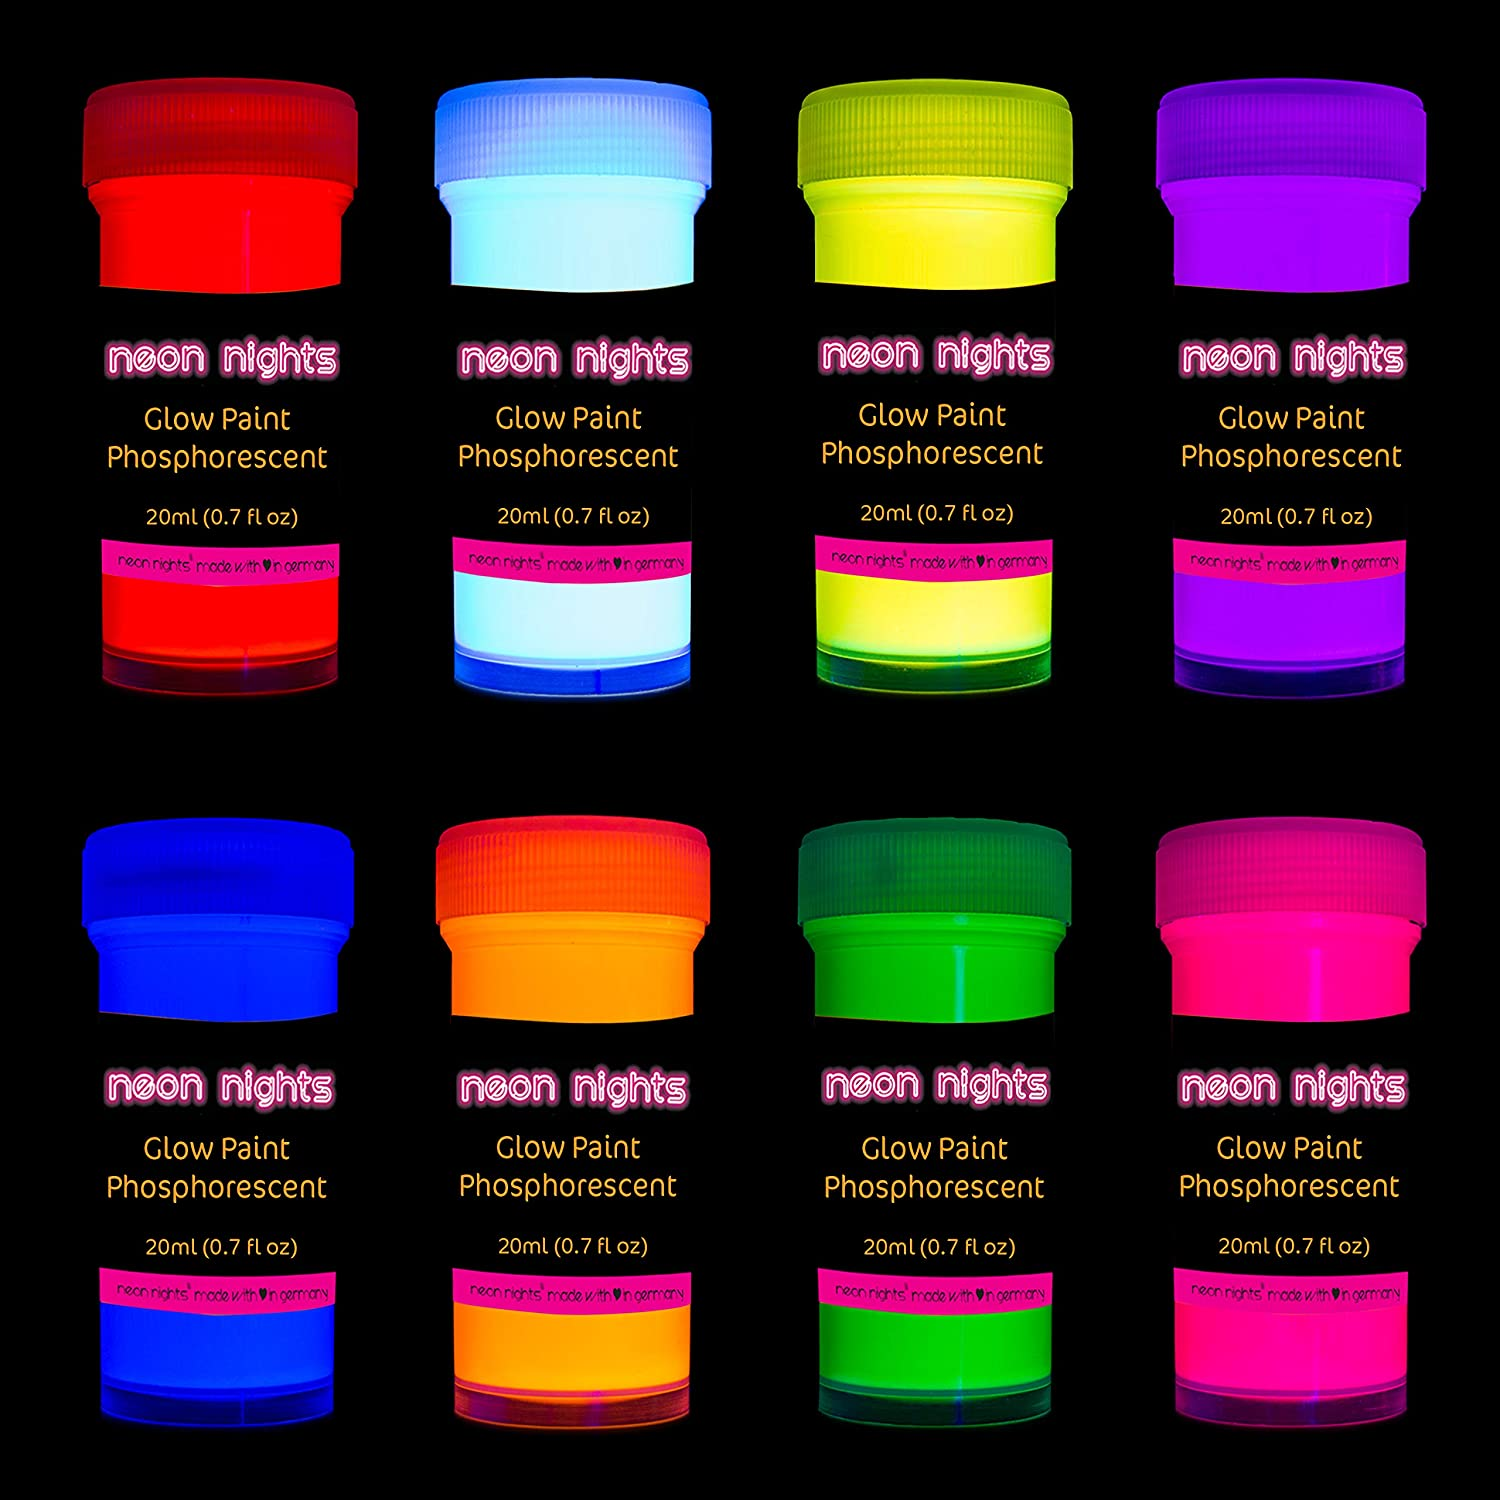 Amazon Com Premium Glow In The Dark Acrylic Paint Set By Neon Nights Set Of 8 Professional Grade Neon Craft Paints Long Lasting Self Luminous Paint Handcrafted In Germany 8 X 20